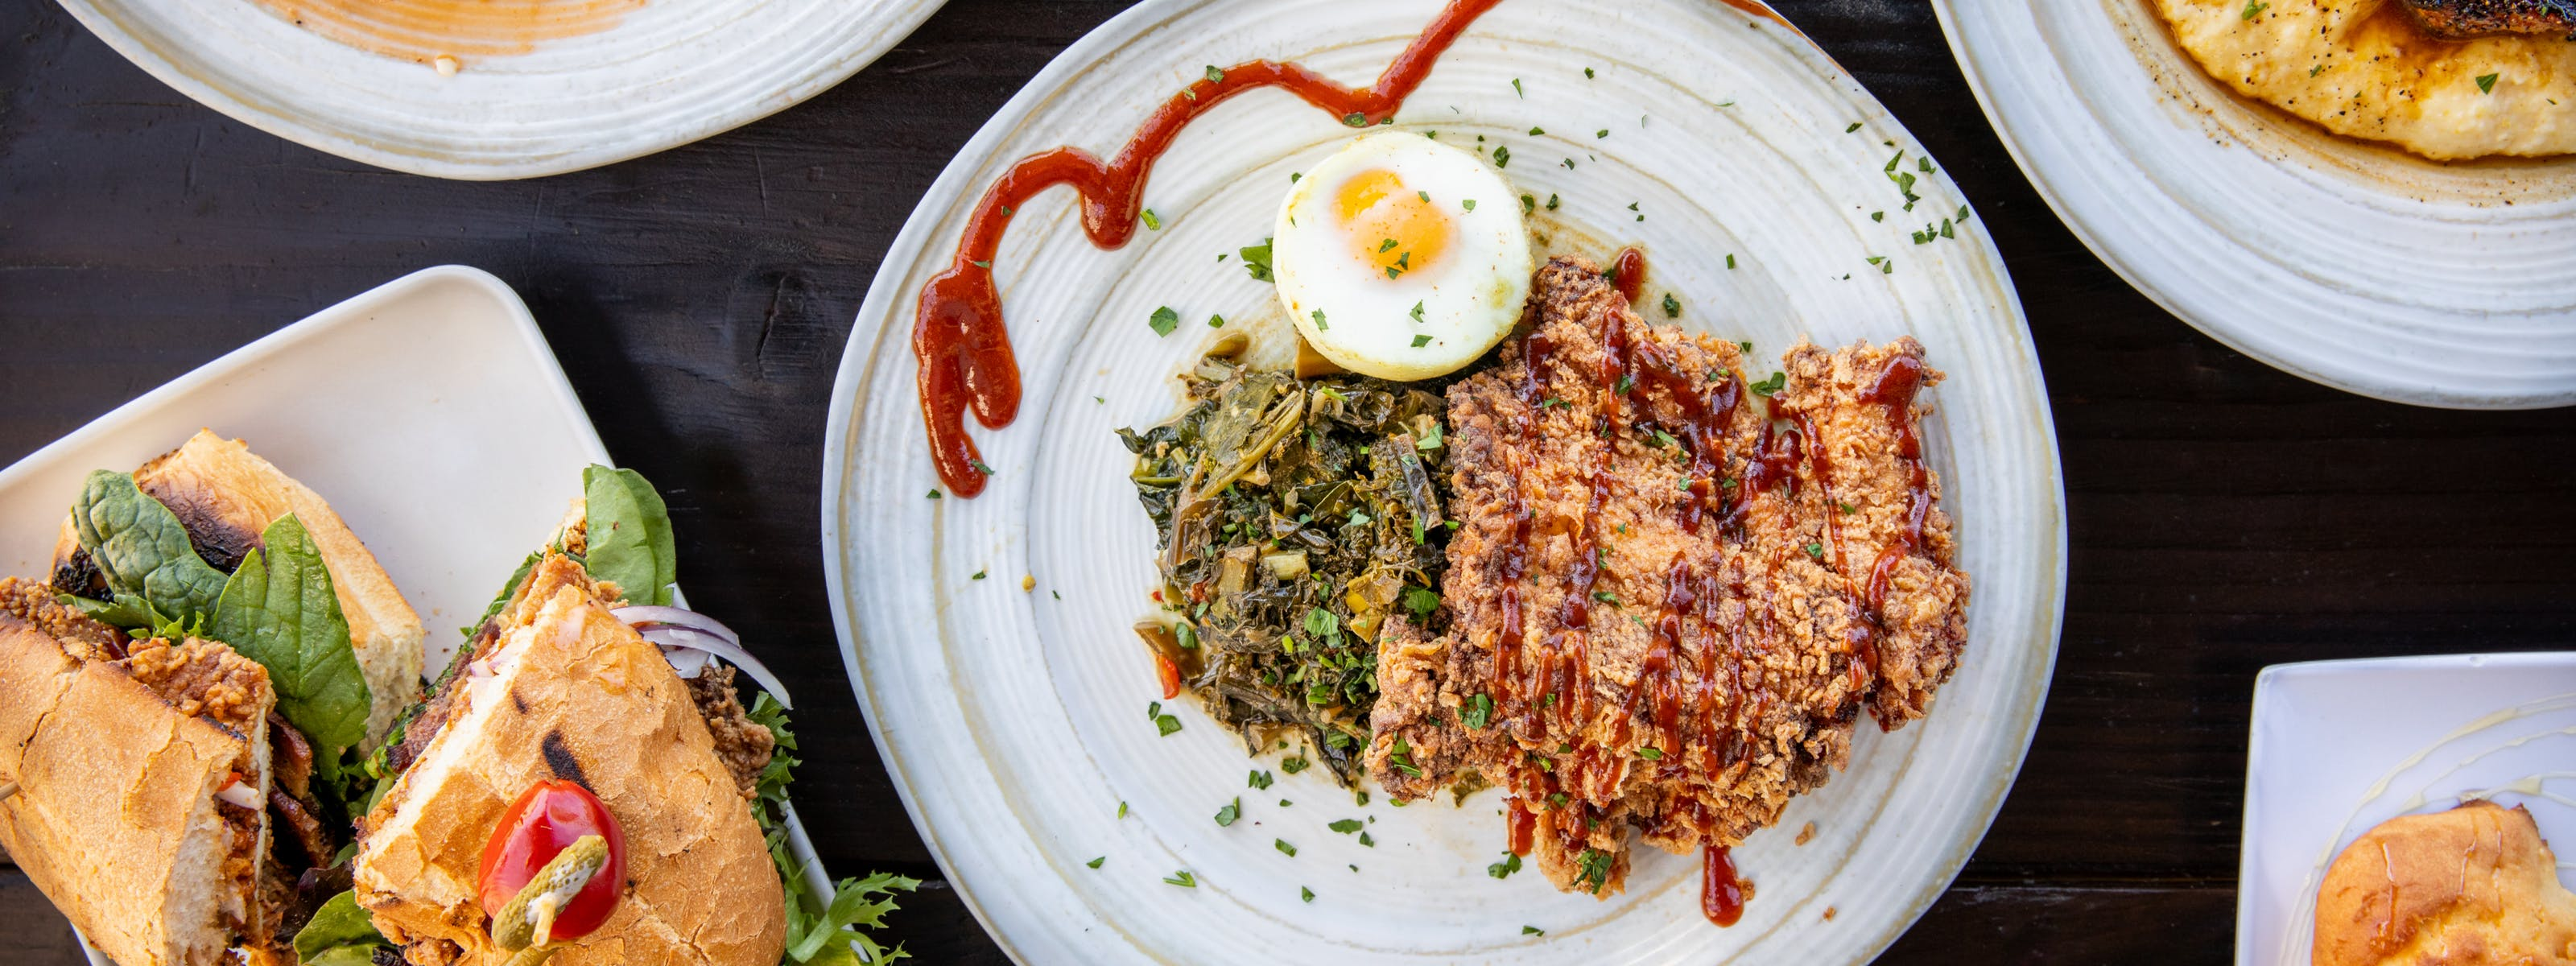 Where To Have Lunch Outside In LA - Los Angeles - The Infatuation